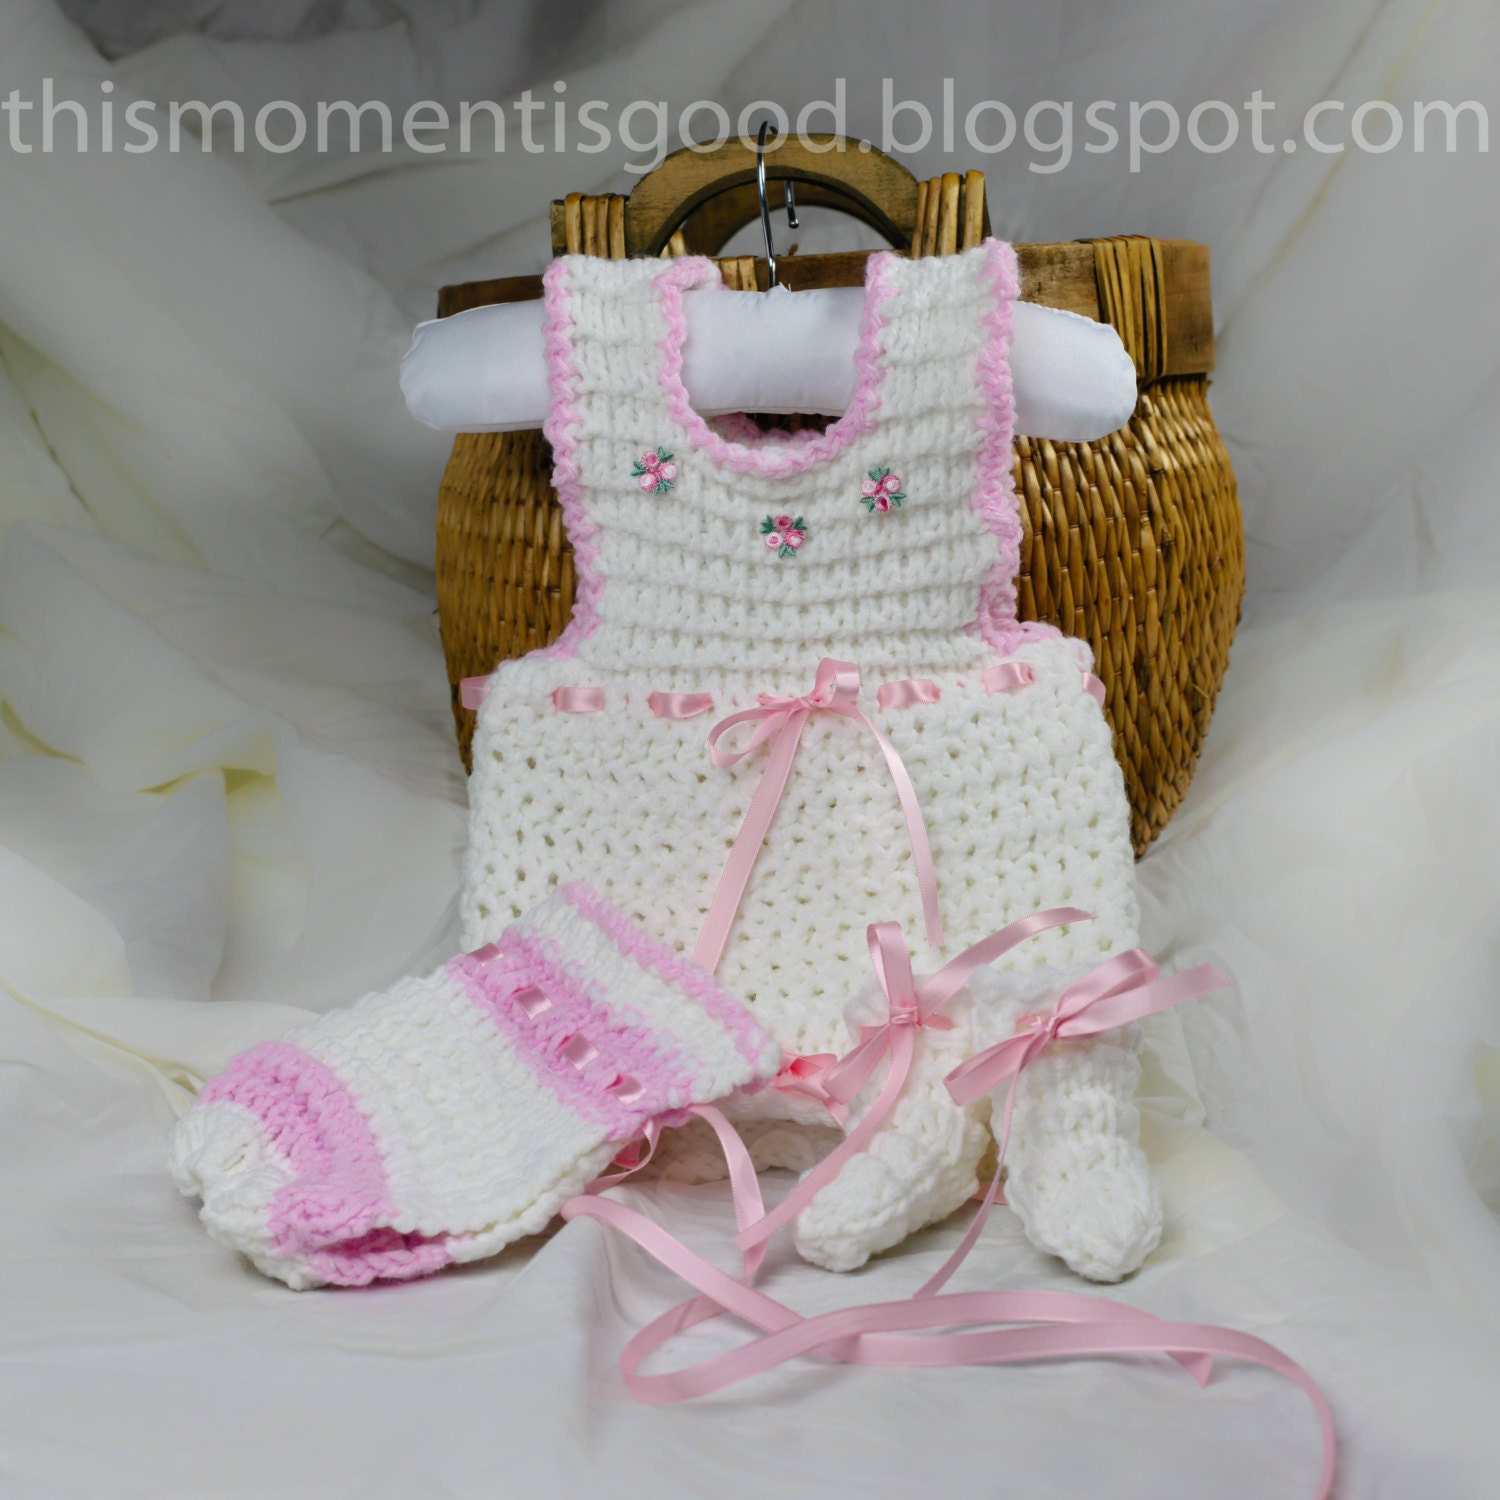 Loom knit Baby Jumper Set PATTERN. PATTERN ONLY includes